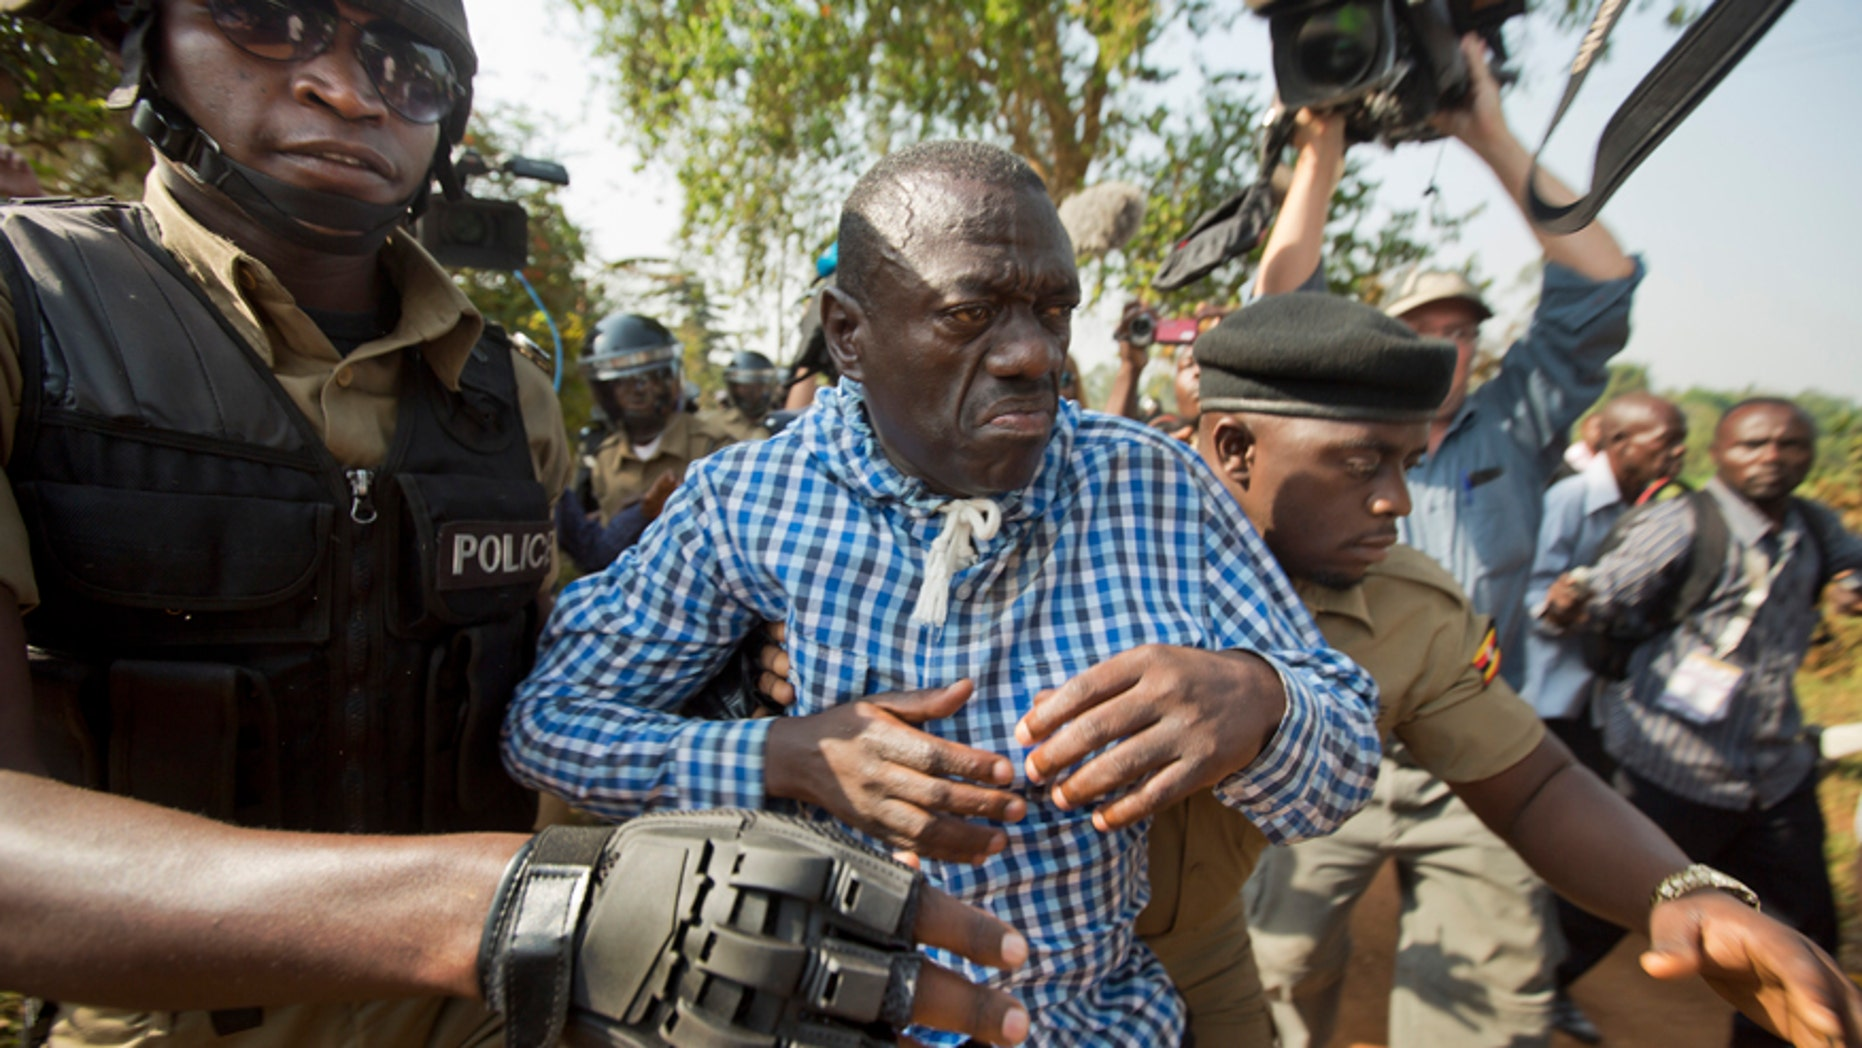 Feb. 22, 2016: Uganda's main opposition leader Kizza Besigye, center, is arrested by police and thrown into the back of a blacked-out police van which whisked him away and was later seen at a rural police station, outside his home in Kasangati, Uganda.